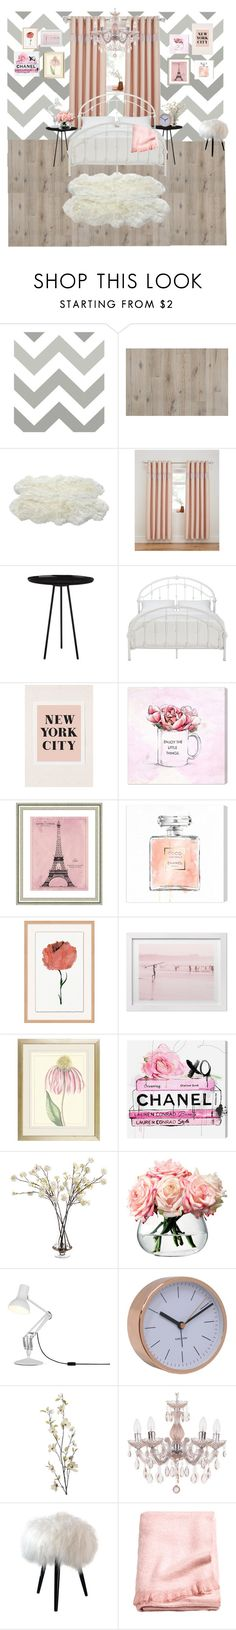 """""""Girl's bedroom"""" by legacy-housing on Polyvore featuring interior, interiors, interior design, home, home decor, interior decorating, Wall Pops!, Inspire Q, Urban Outfitters and Oliver Gal Artist Co."""